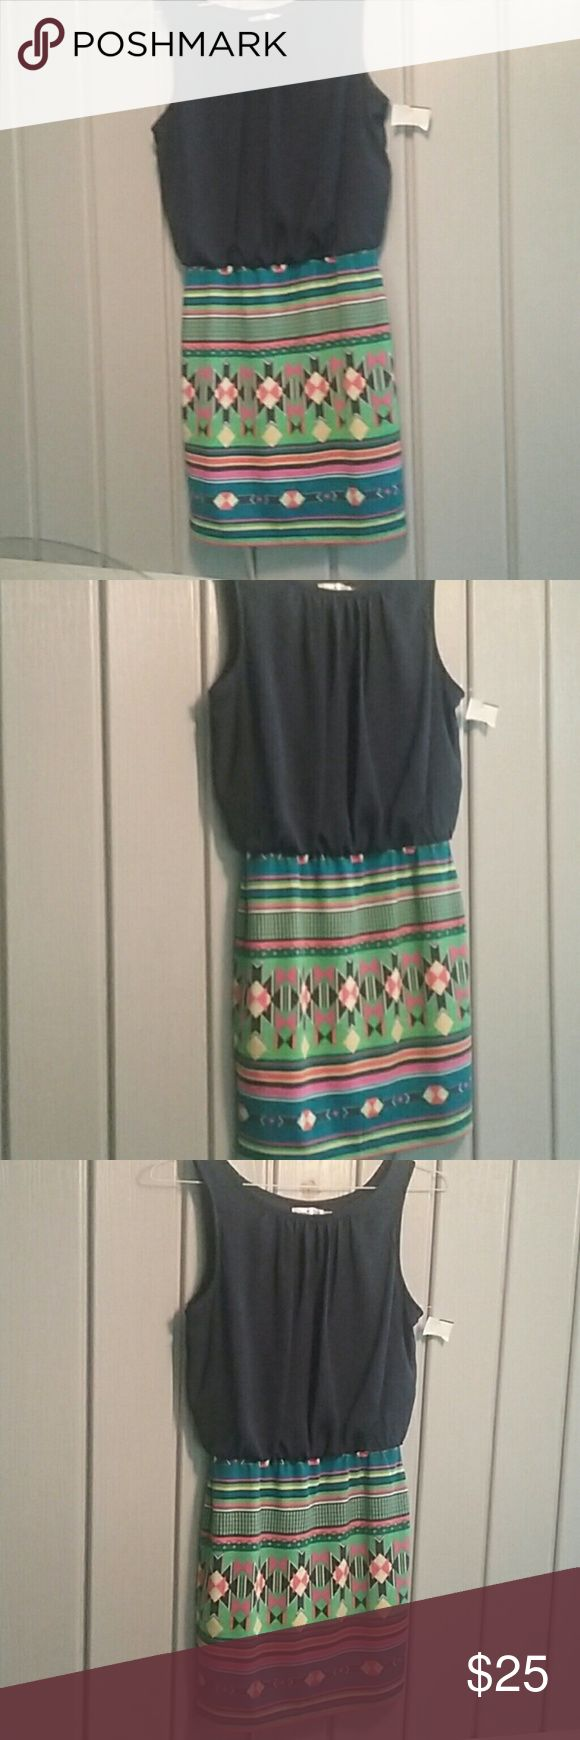 Cute Aztec Dress! Navy blue top and exciting vibrant Aztec print skirt.  This dress is brand new and is versatile for Any occasion. Dresses Midi